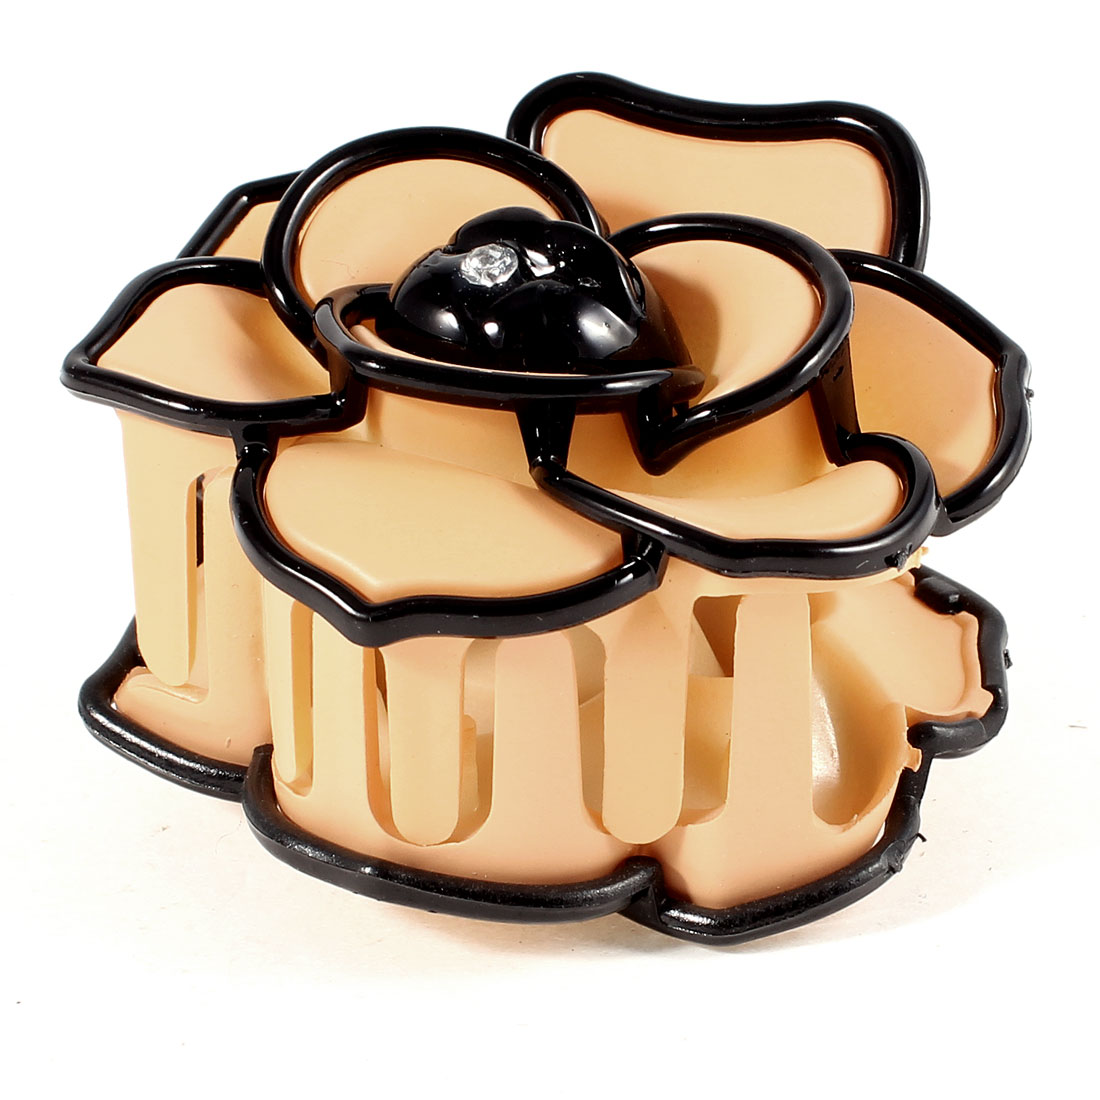 Apricot Color Black Spring Loaded Plastic Teeth Rose Flower Claw Hair Clip